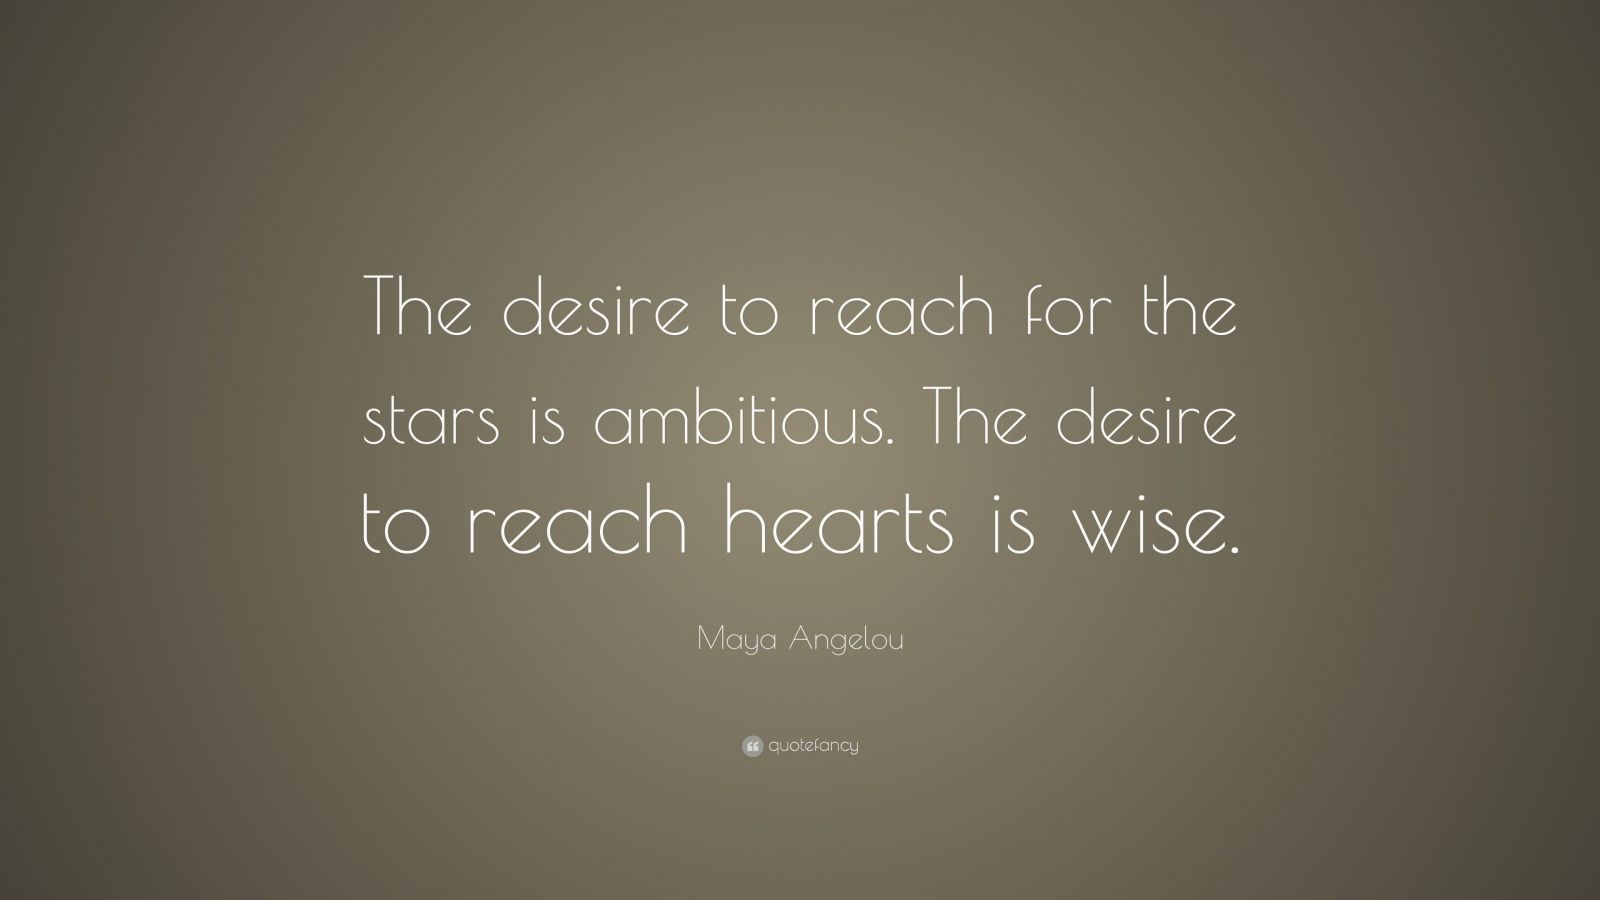 Wise Failure Quotes Wallpaper Maya Angelou Quote The Desire To Reach For The Stars Is